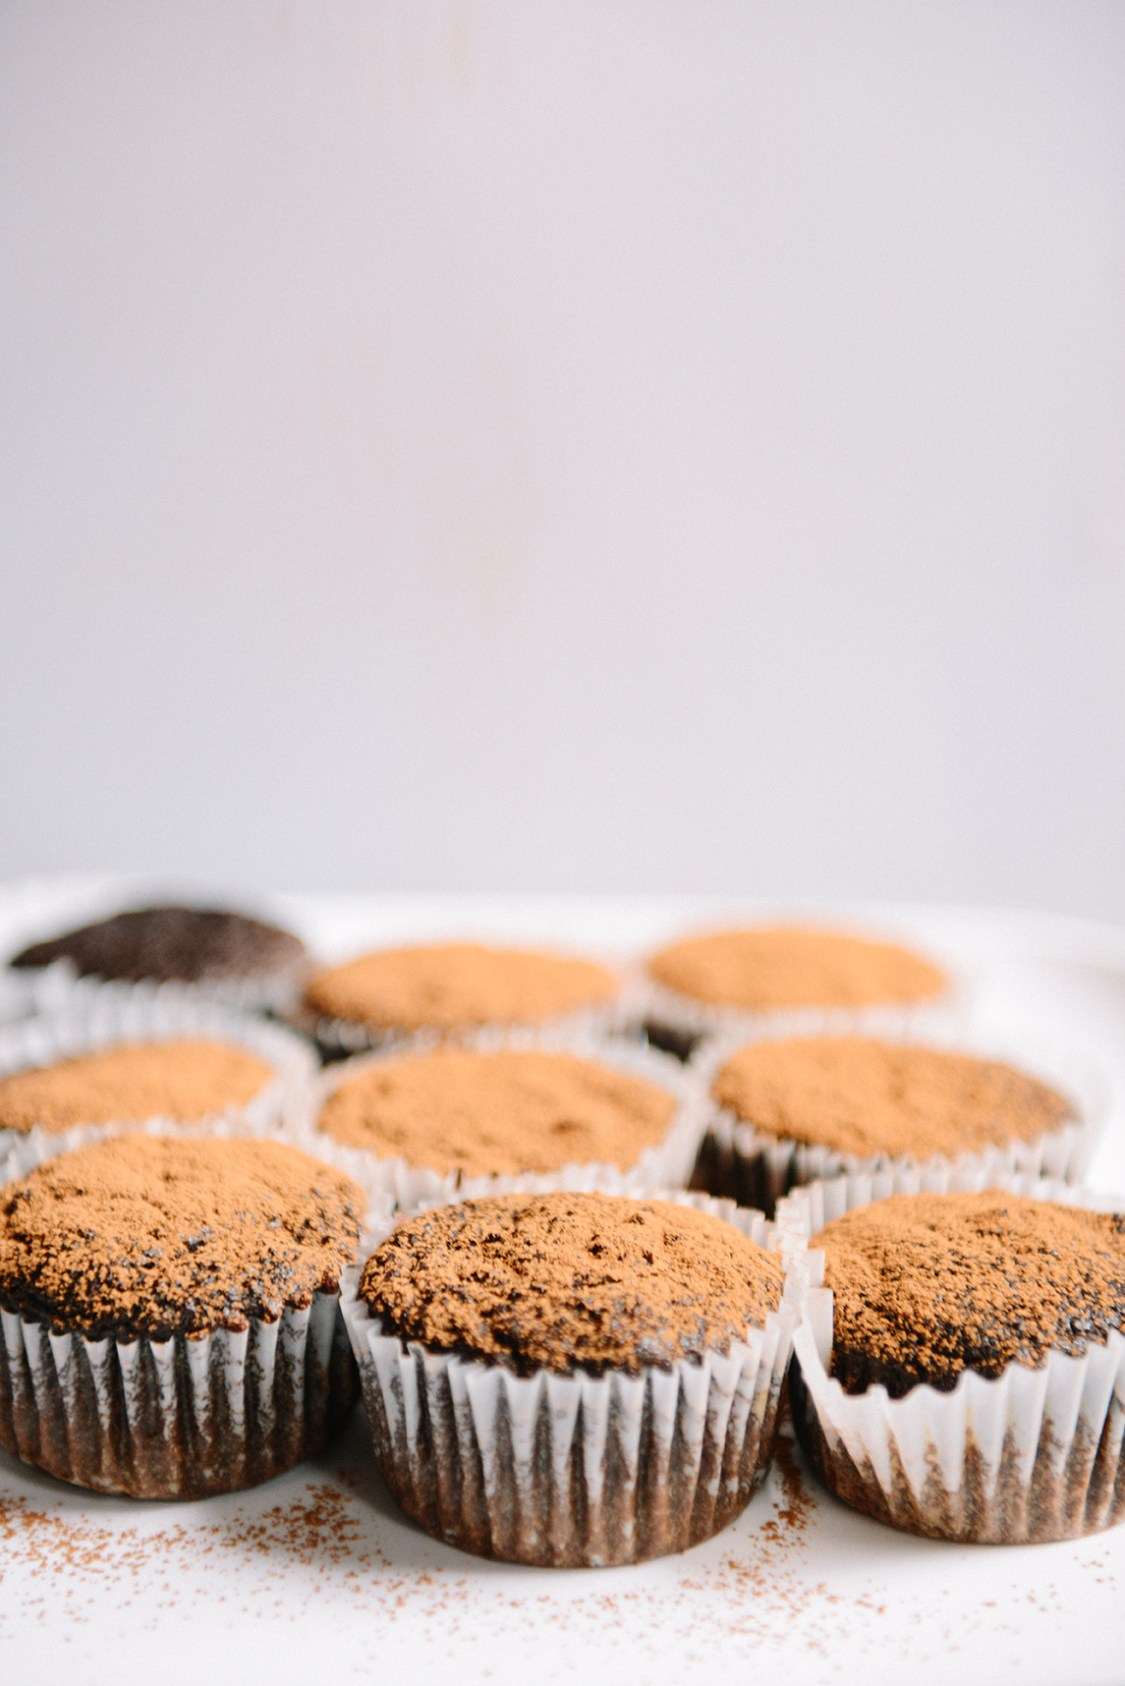 Roasted Beet Chocolate Cupcakes with Raw Cacao (Vegan) // www.WithTheGrains.com